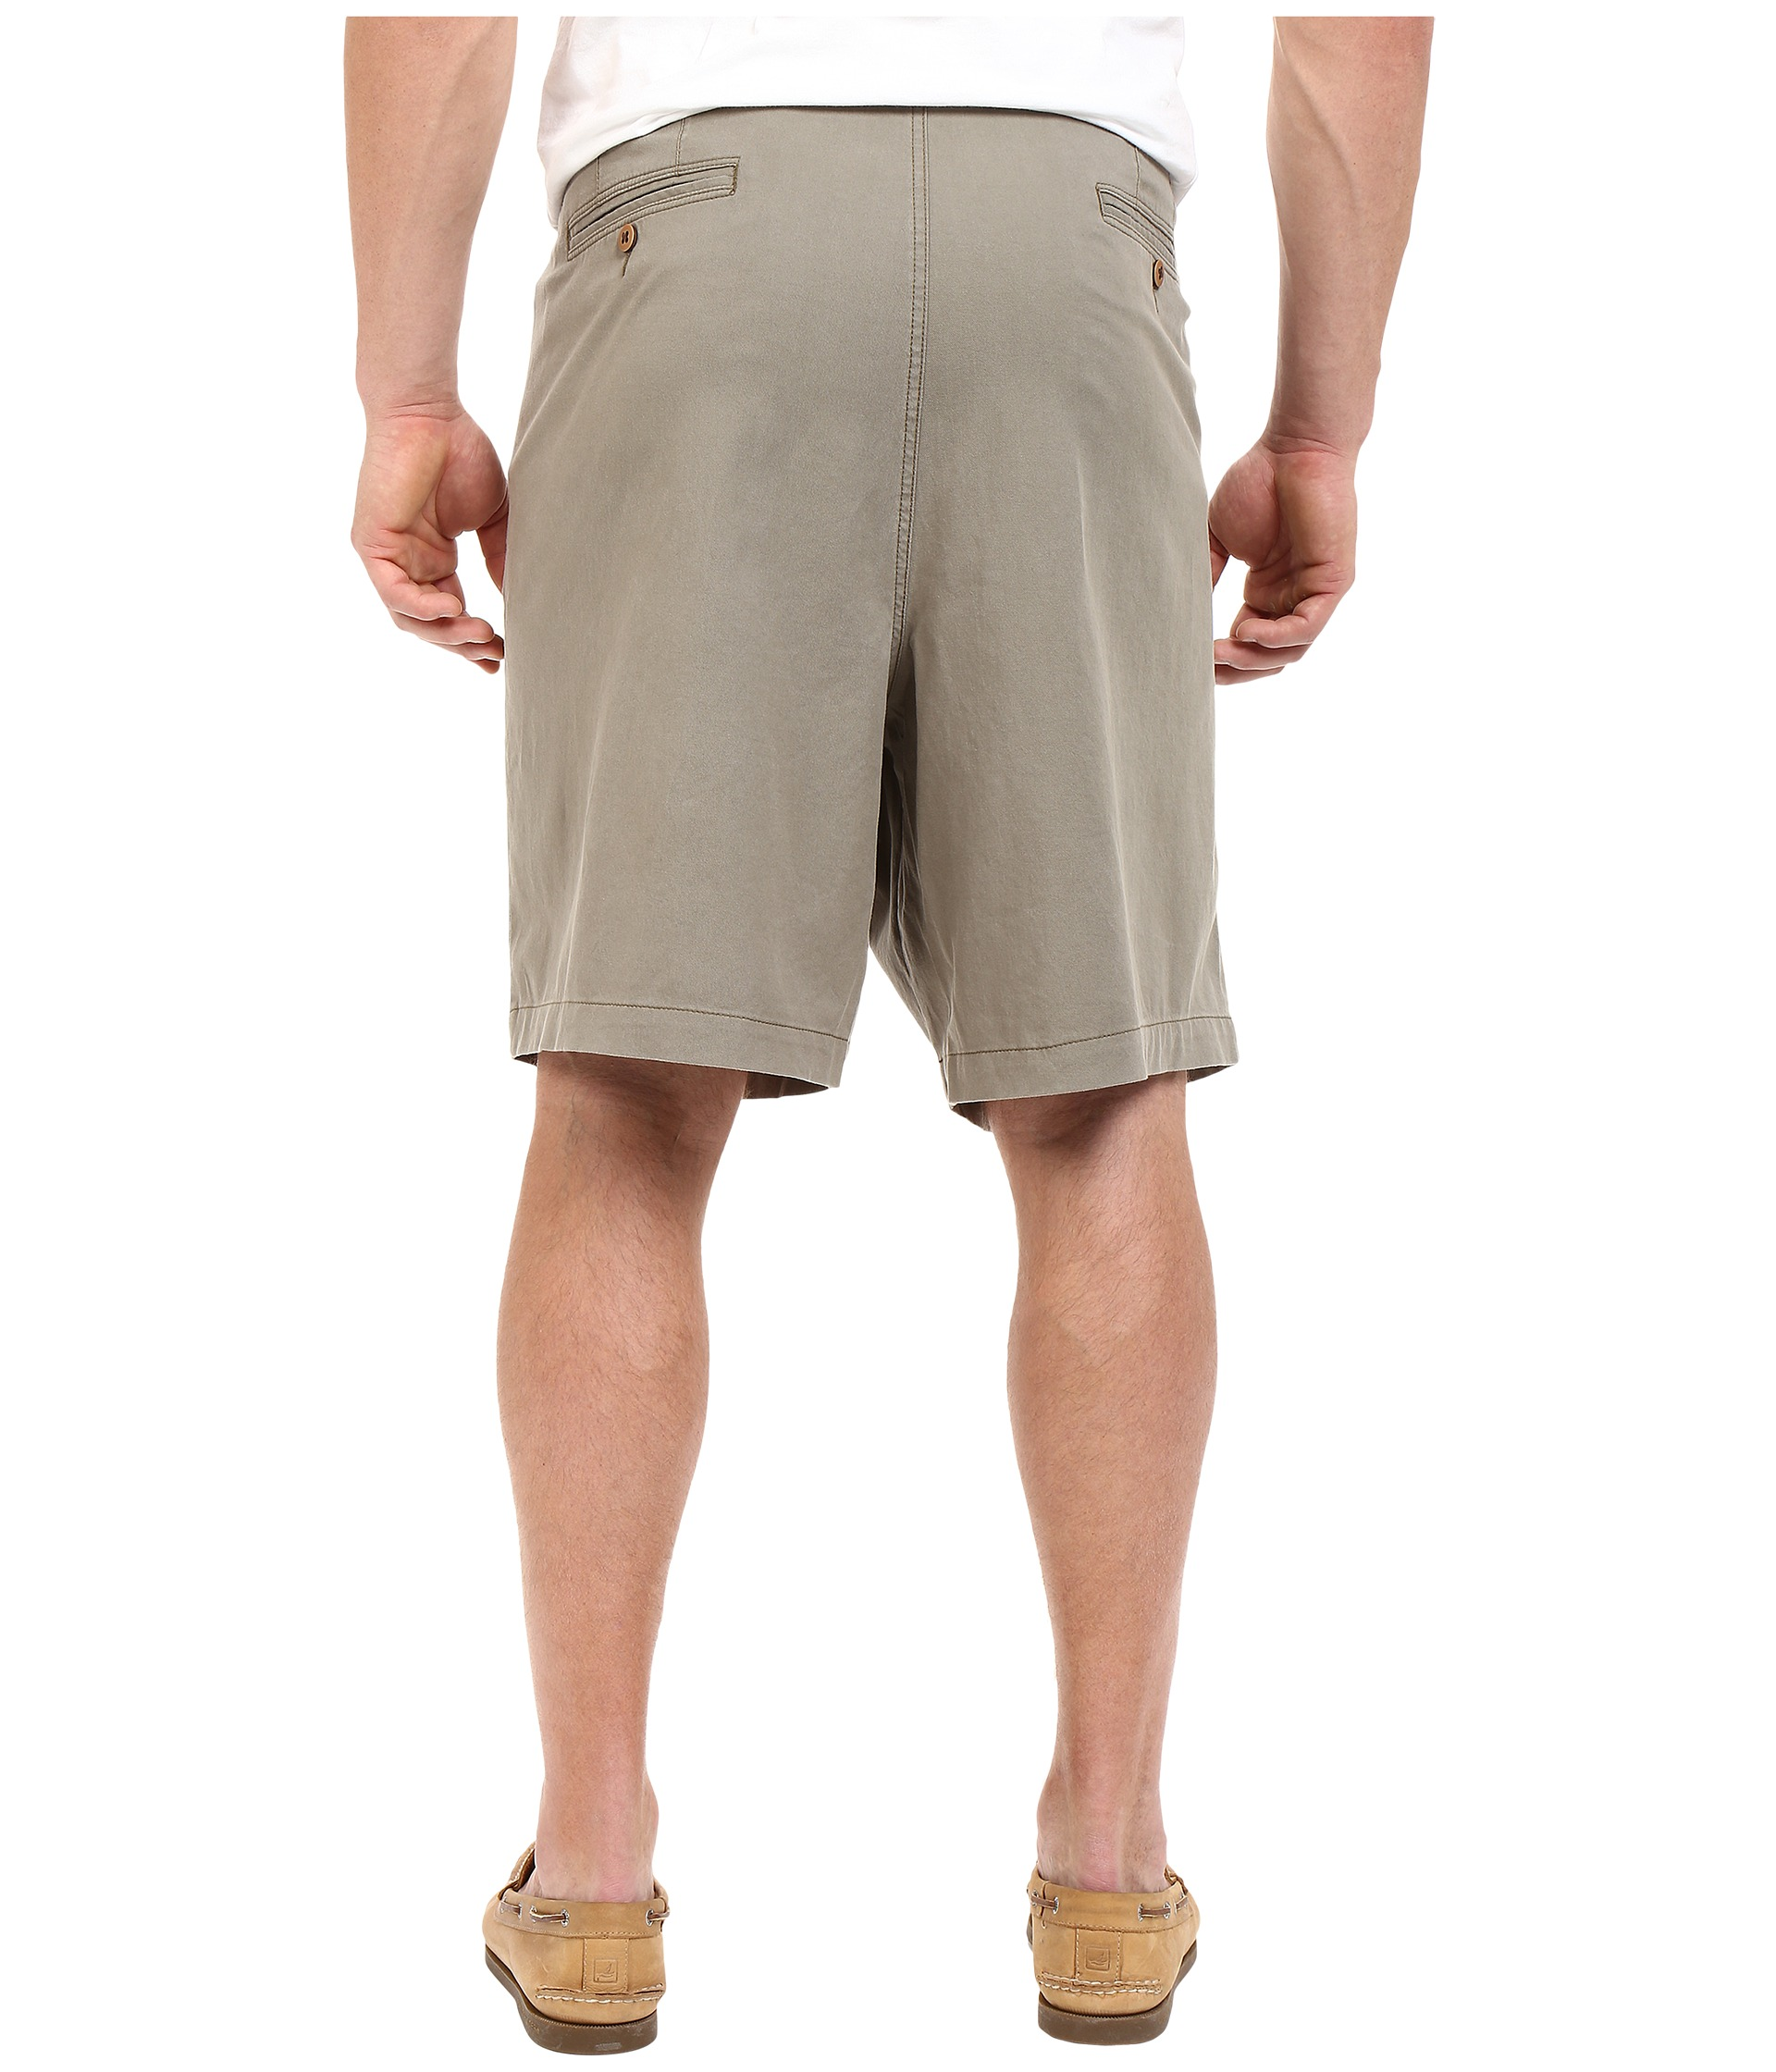 Dickies offers a wide array of mens big & tall shorts including cargo shorts, work shorts, painters shorts and more in many sizes, styles, and fits. Shop today! Williamson-Dickie Mfg. Co.